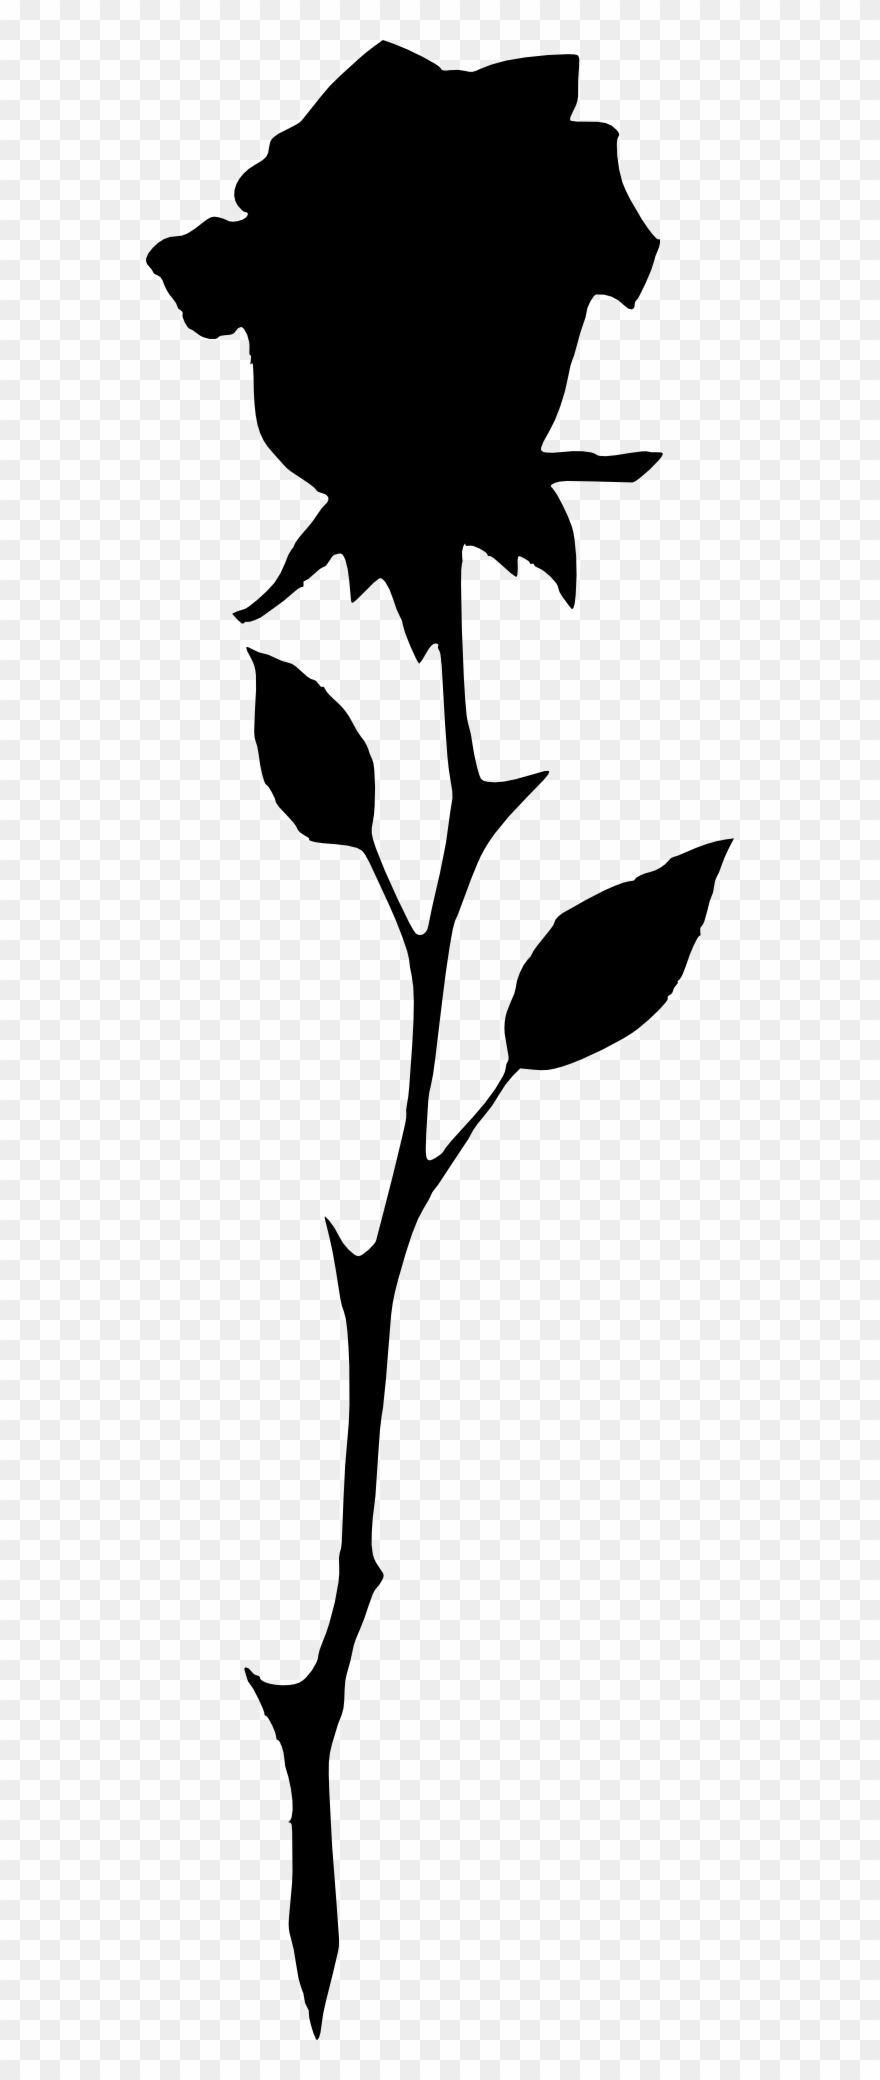 Rose silhouette clipart clipart freeuse download Long Stem Rose Silhouette - Long Rose Silhouette Clipart ... clipart freeuse download